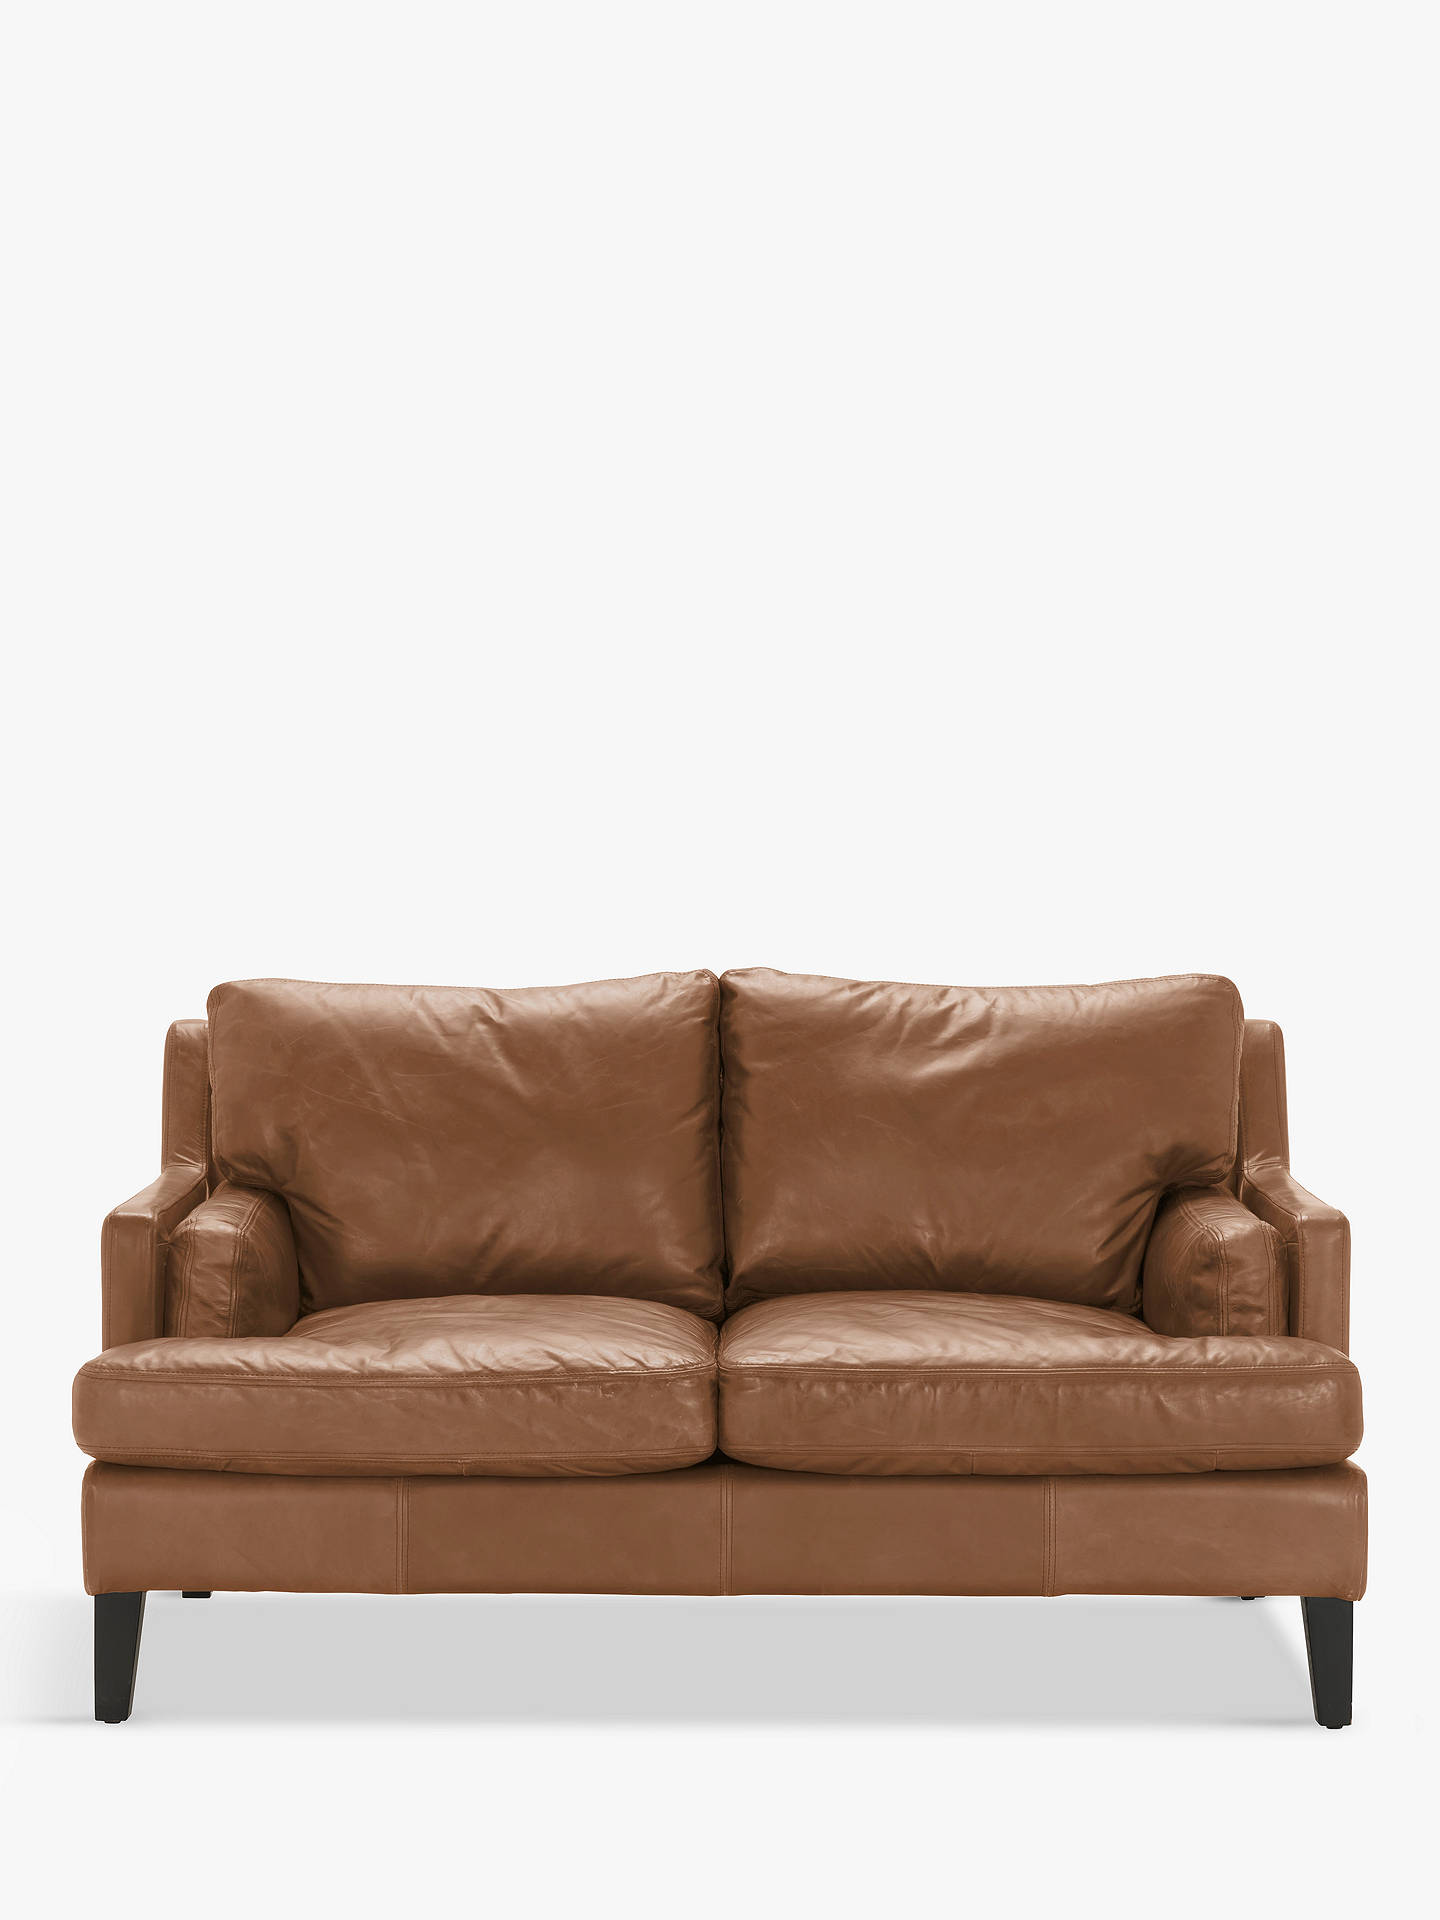 Halo Canson Medium 2 Seater Leather Sofa Riders Nut Online At Johnlewis